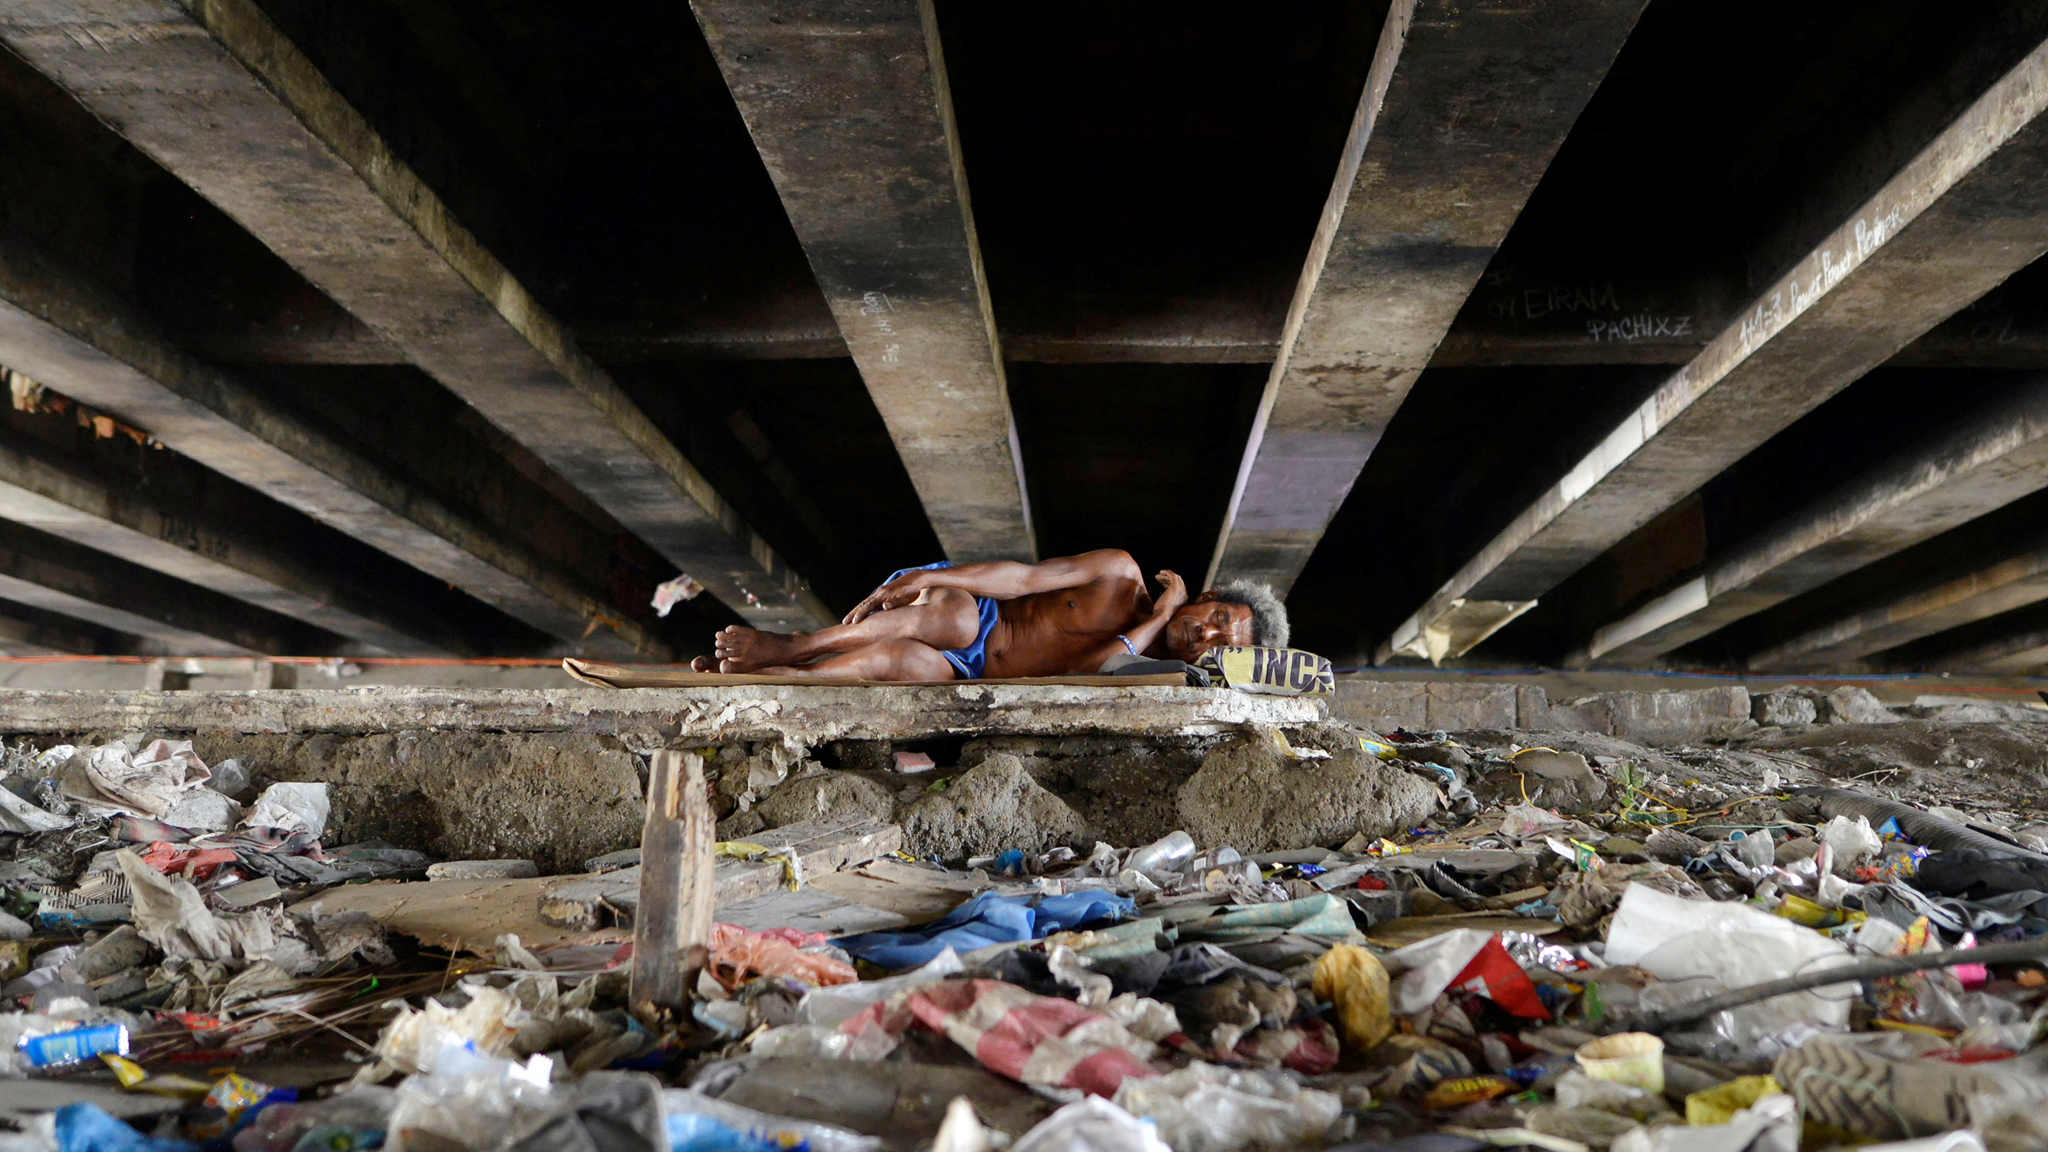 A man sleeps amidst rubbish under a bridge in Paranaque city, Metro Manila...A man sleeps amidst rubbish under a bridge in Paranaque city, Metro Manila, Philippines May 31, 2016. REUTERS/Ezra Acayan